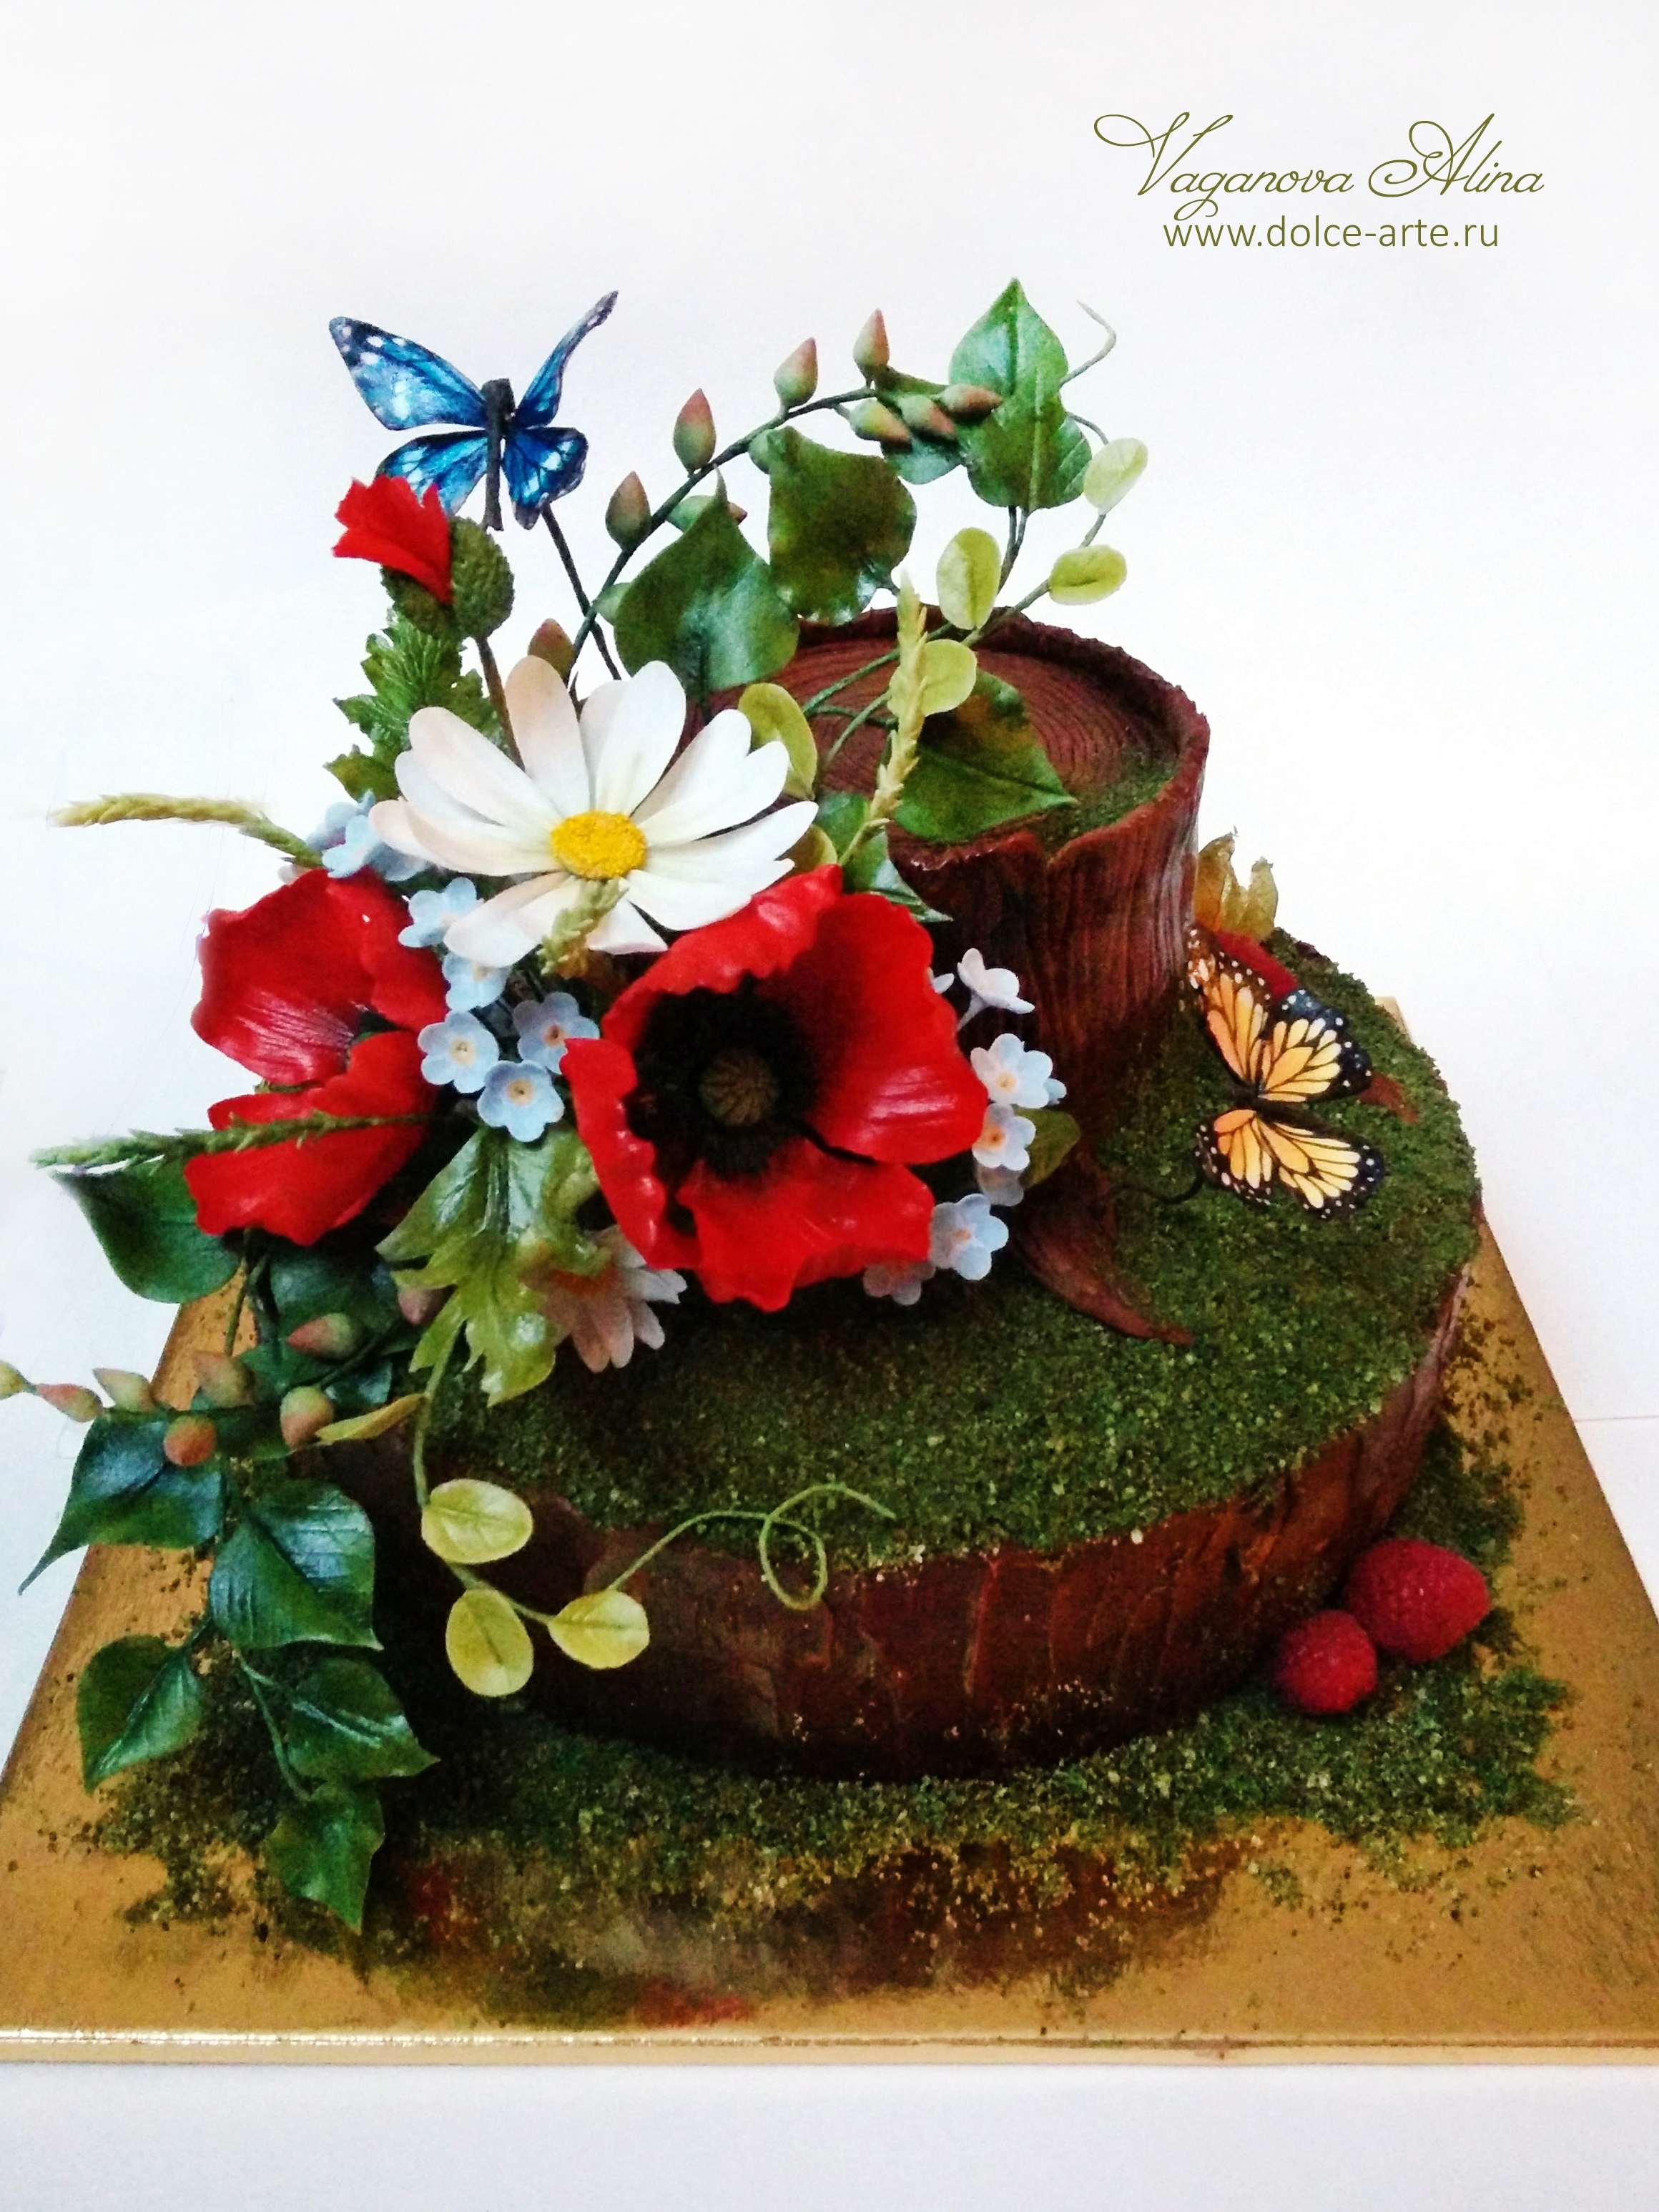 Wildflowers cake for the girl. inside is a chocolate mud cake with mascarpone cream and raspberry filling. inside a stump is a special filling for...